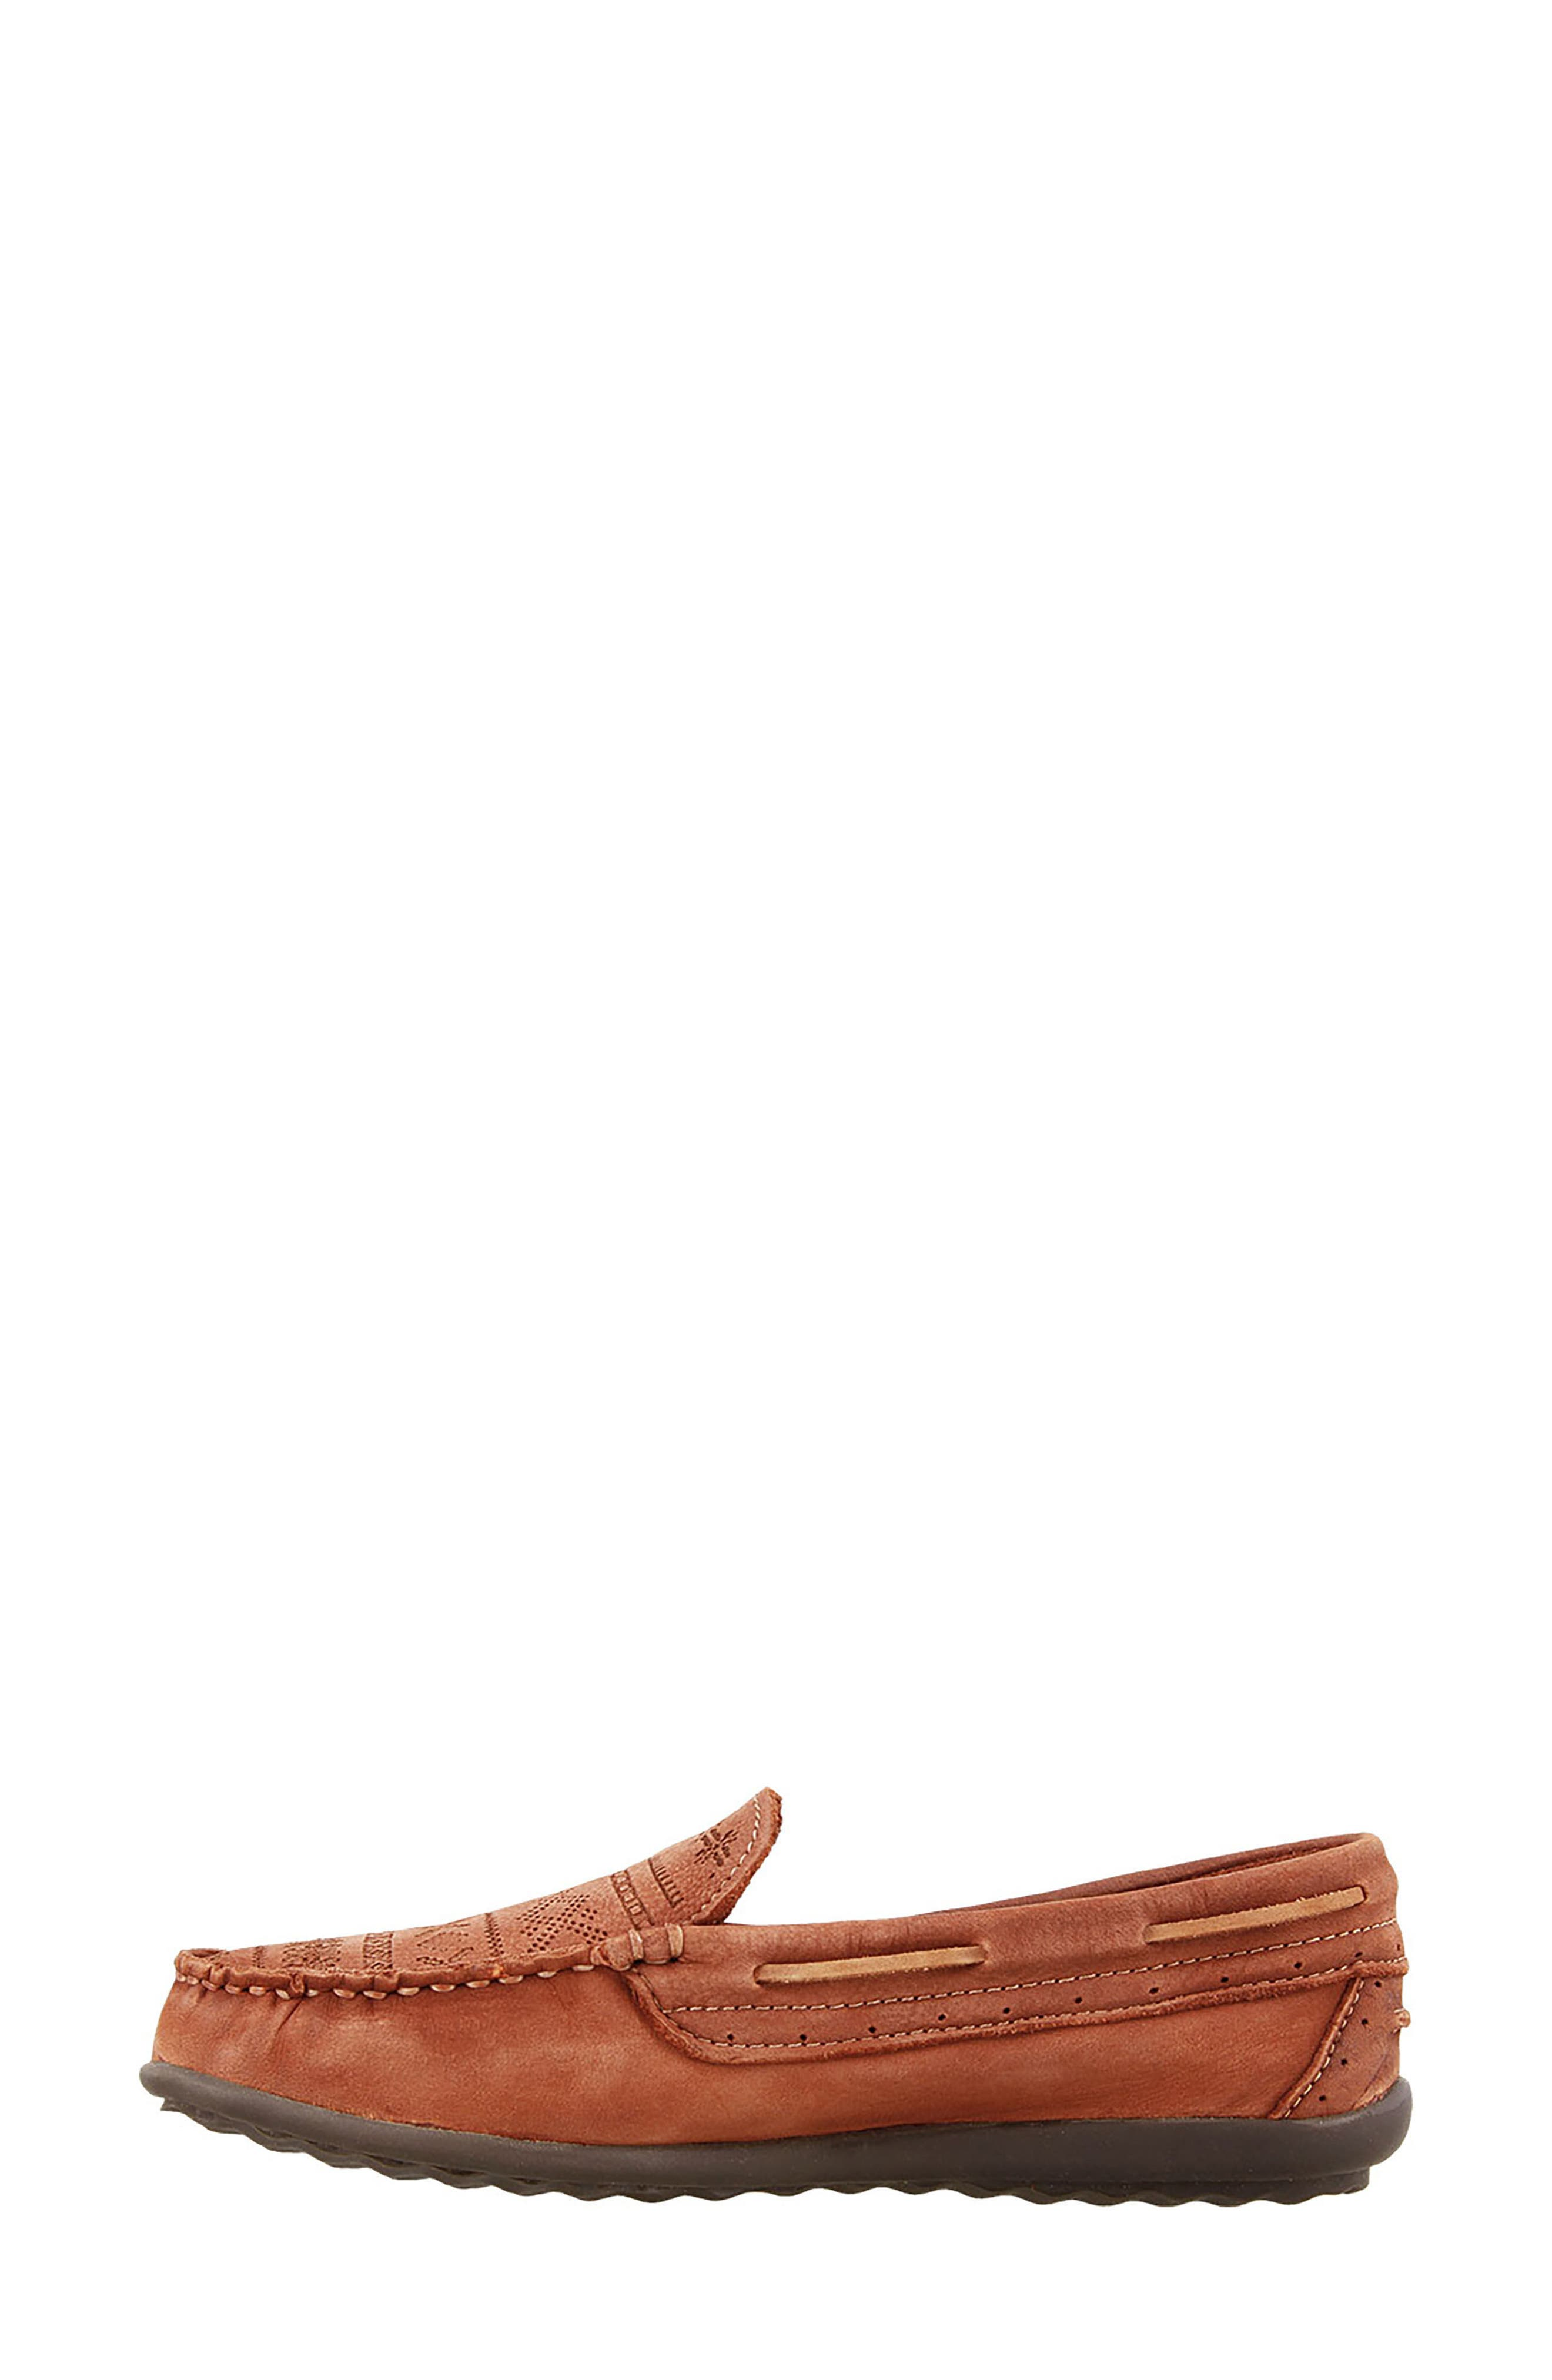 Heritage Moccasin Flat,                             Alternate thumbnail 4, color,                             Spice Red Leather